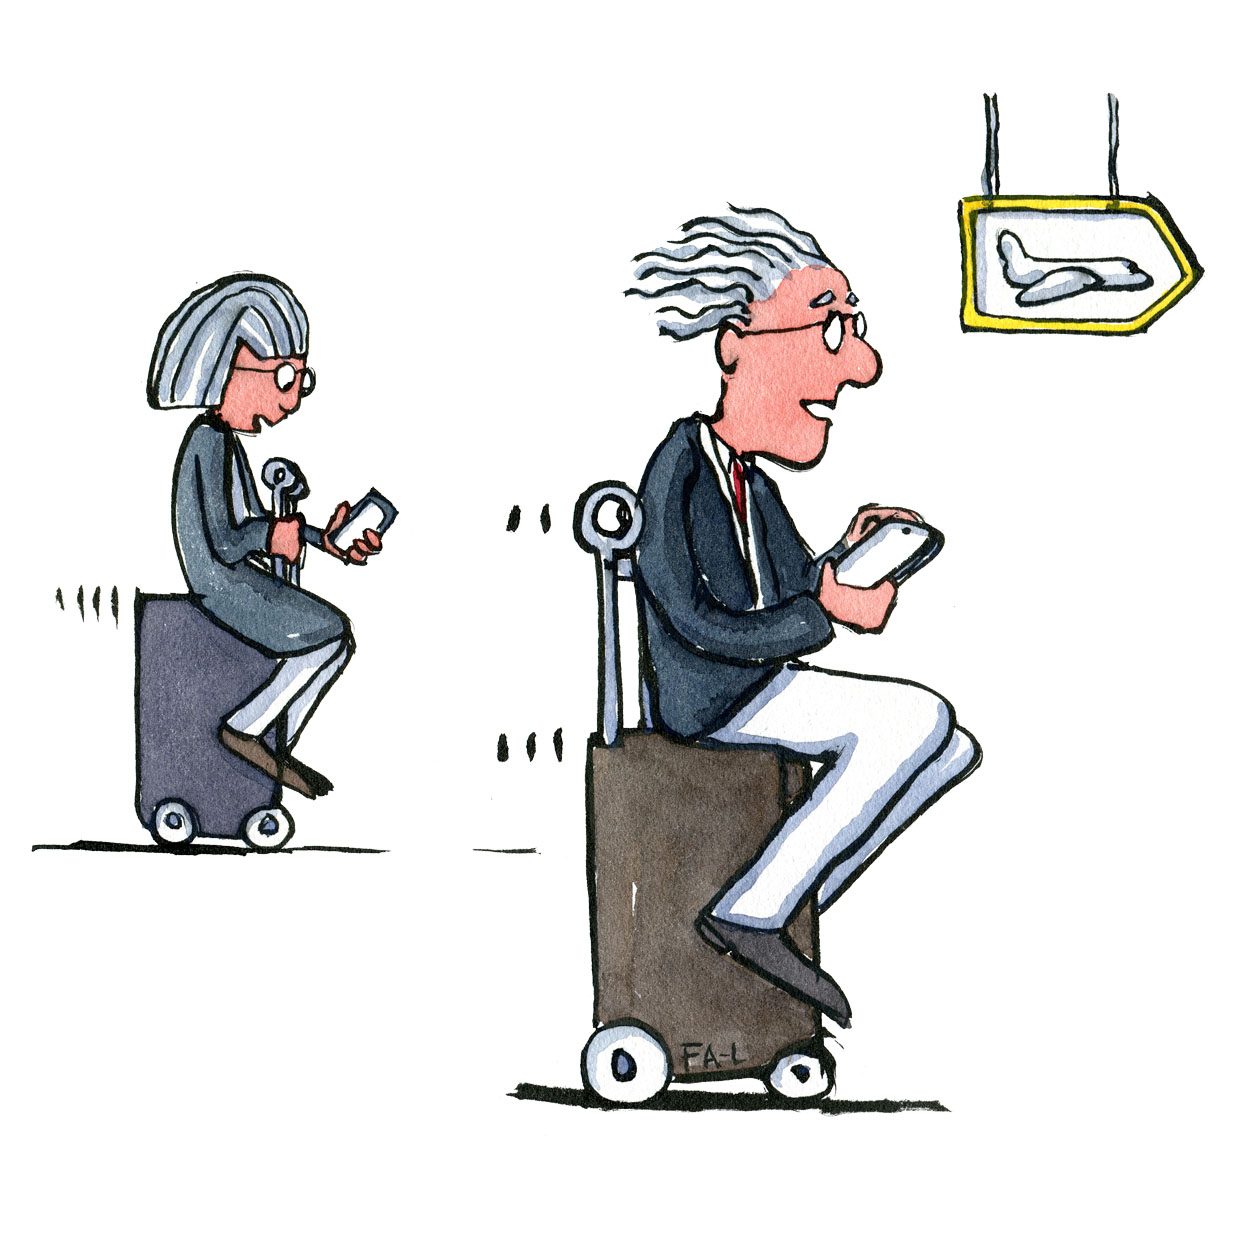 Two elderly persons with their phones on self rolling suitcases. Illustration by Frits Ahlefeldt